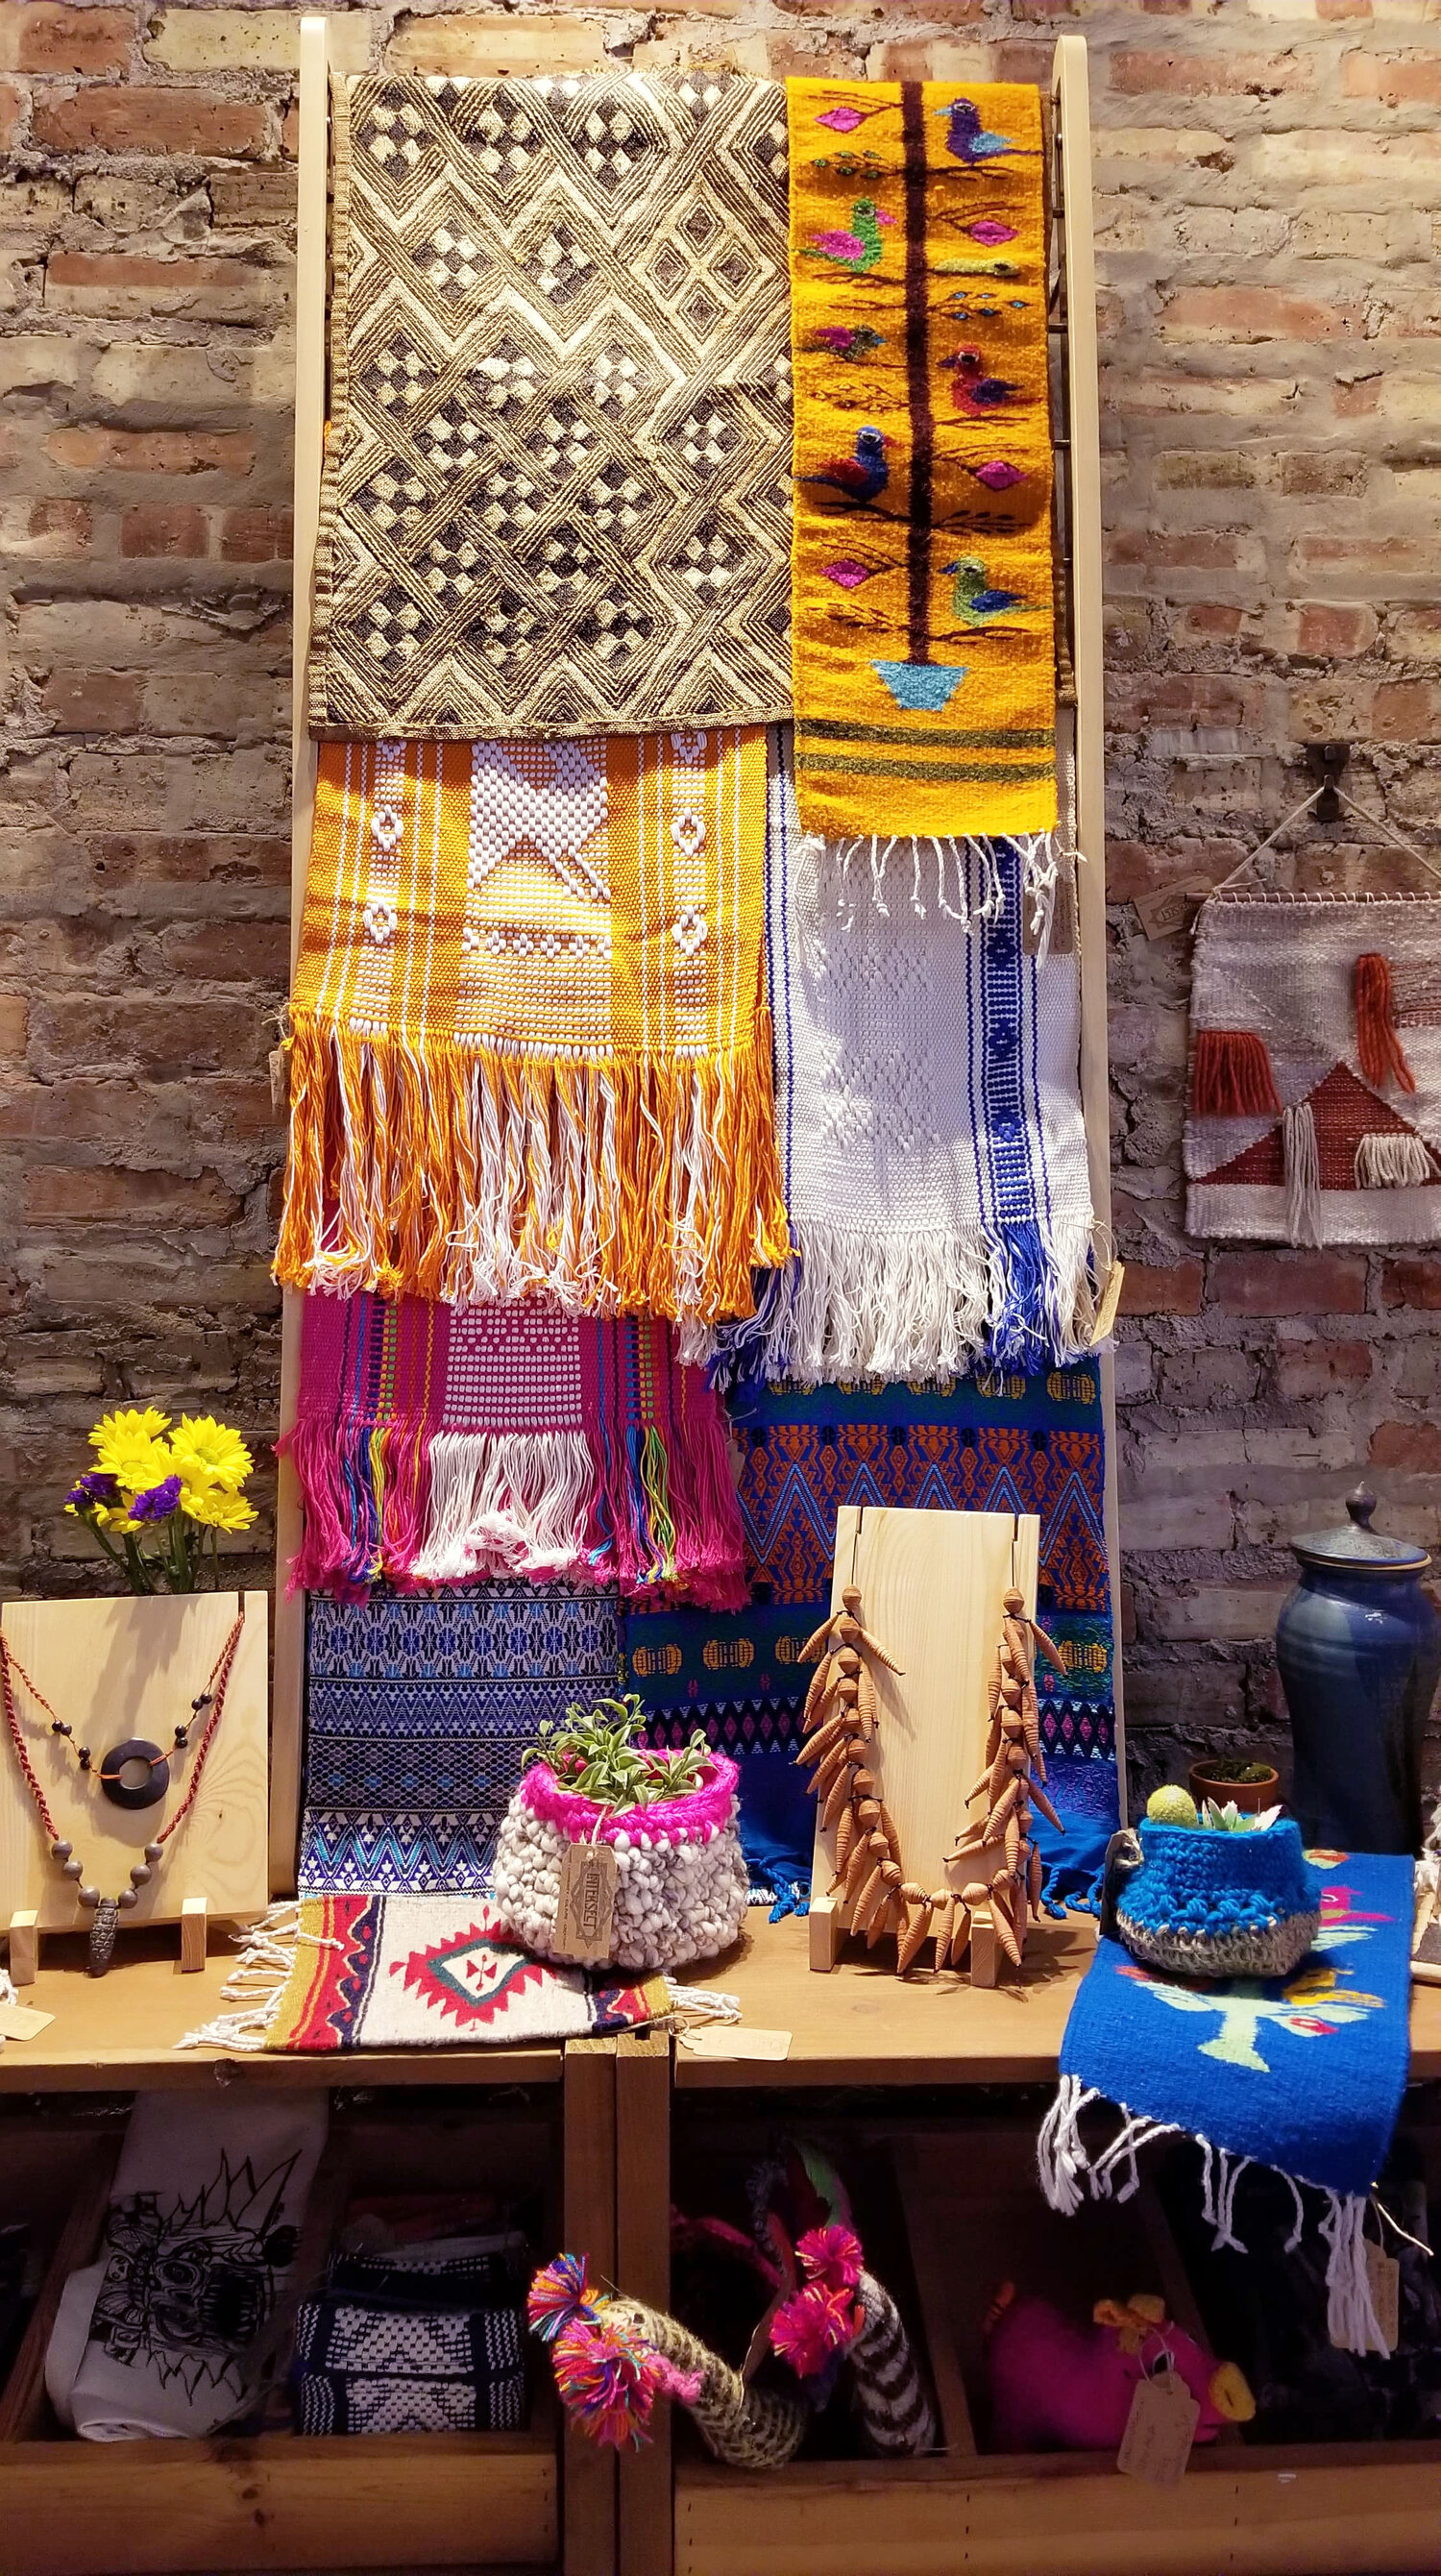 Handwoven textiles from Oaxaca and Chiapas, Mexico